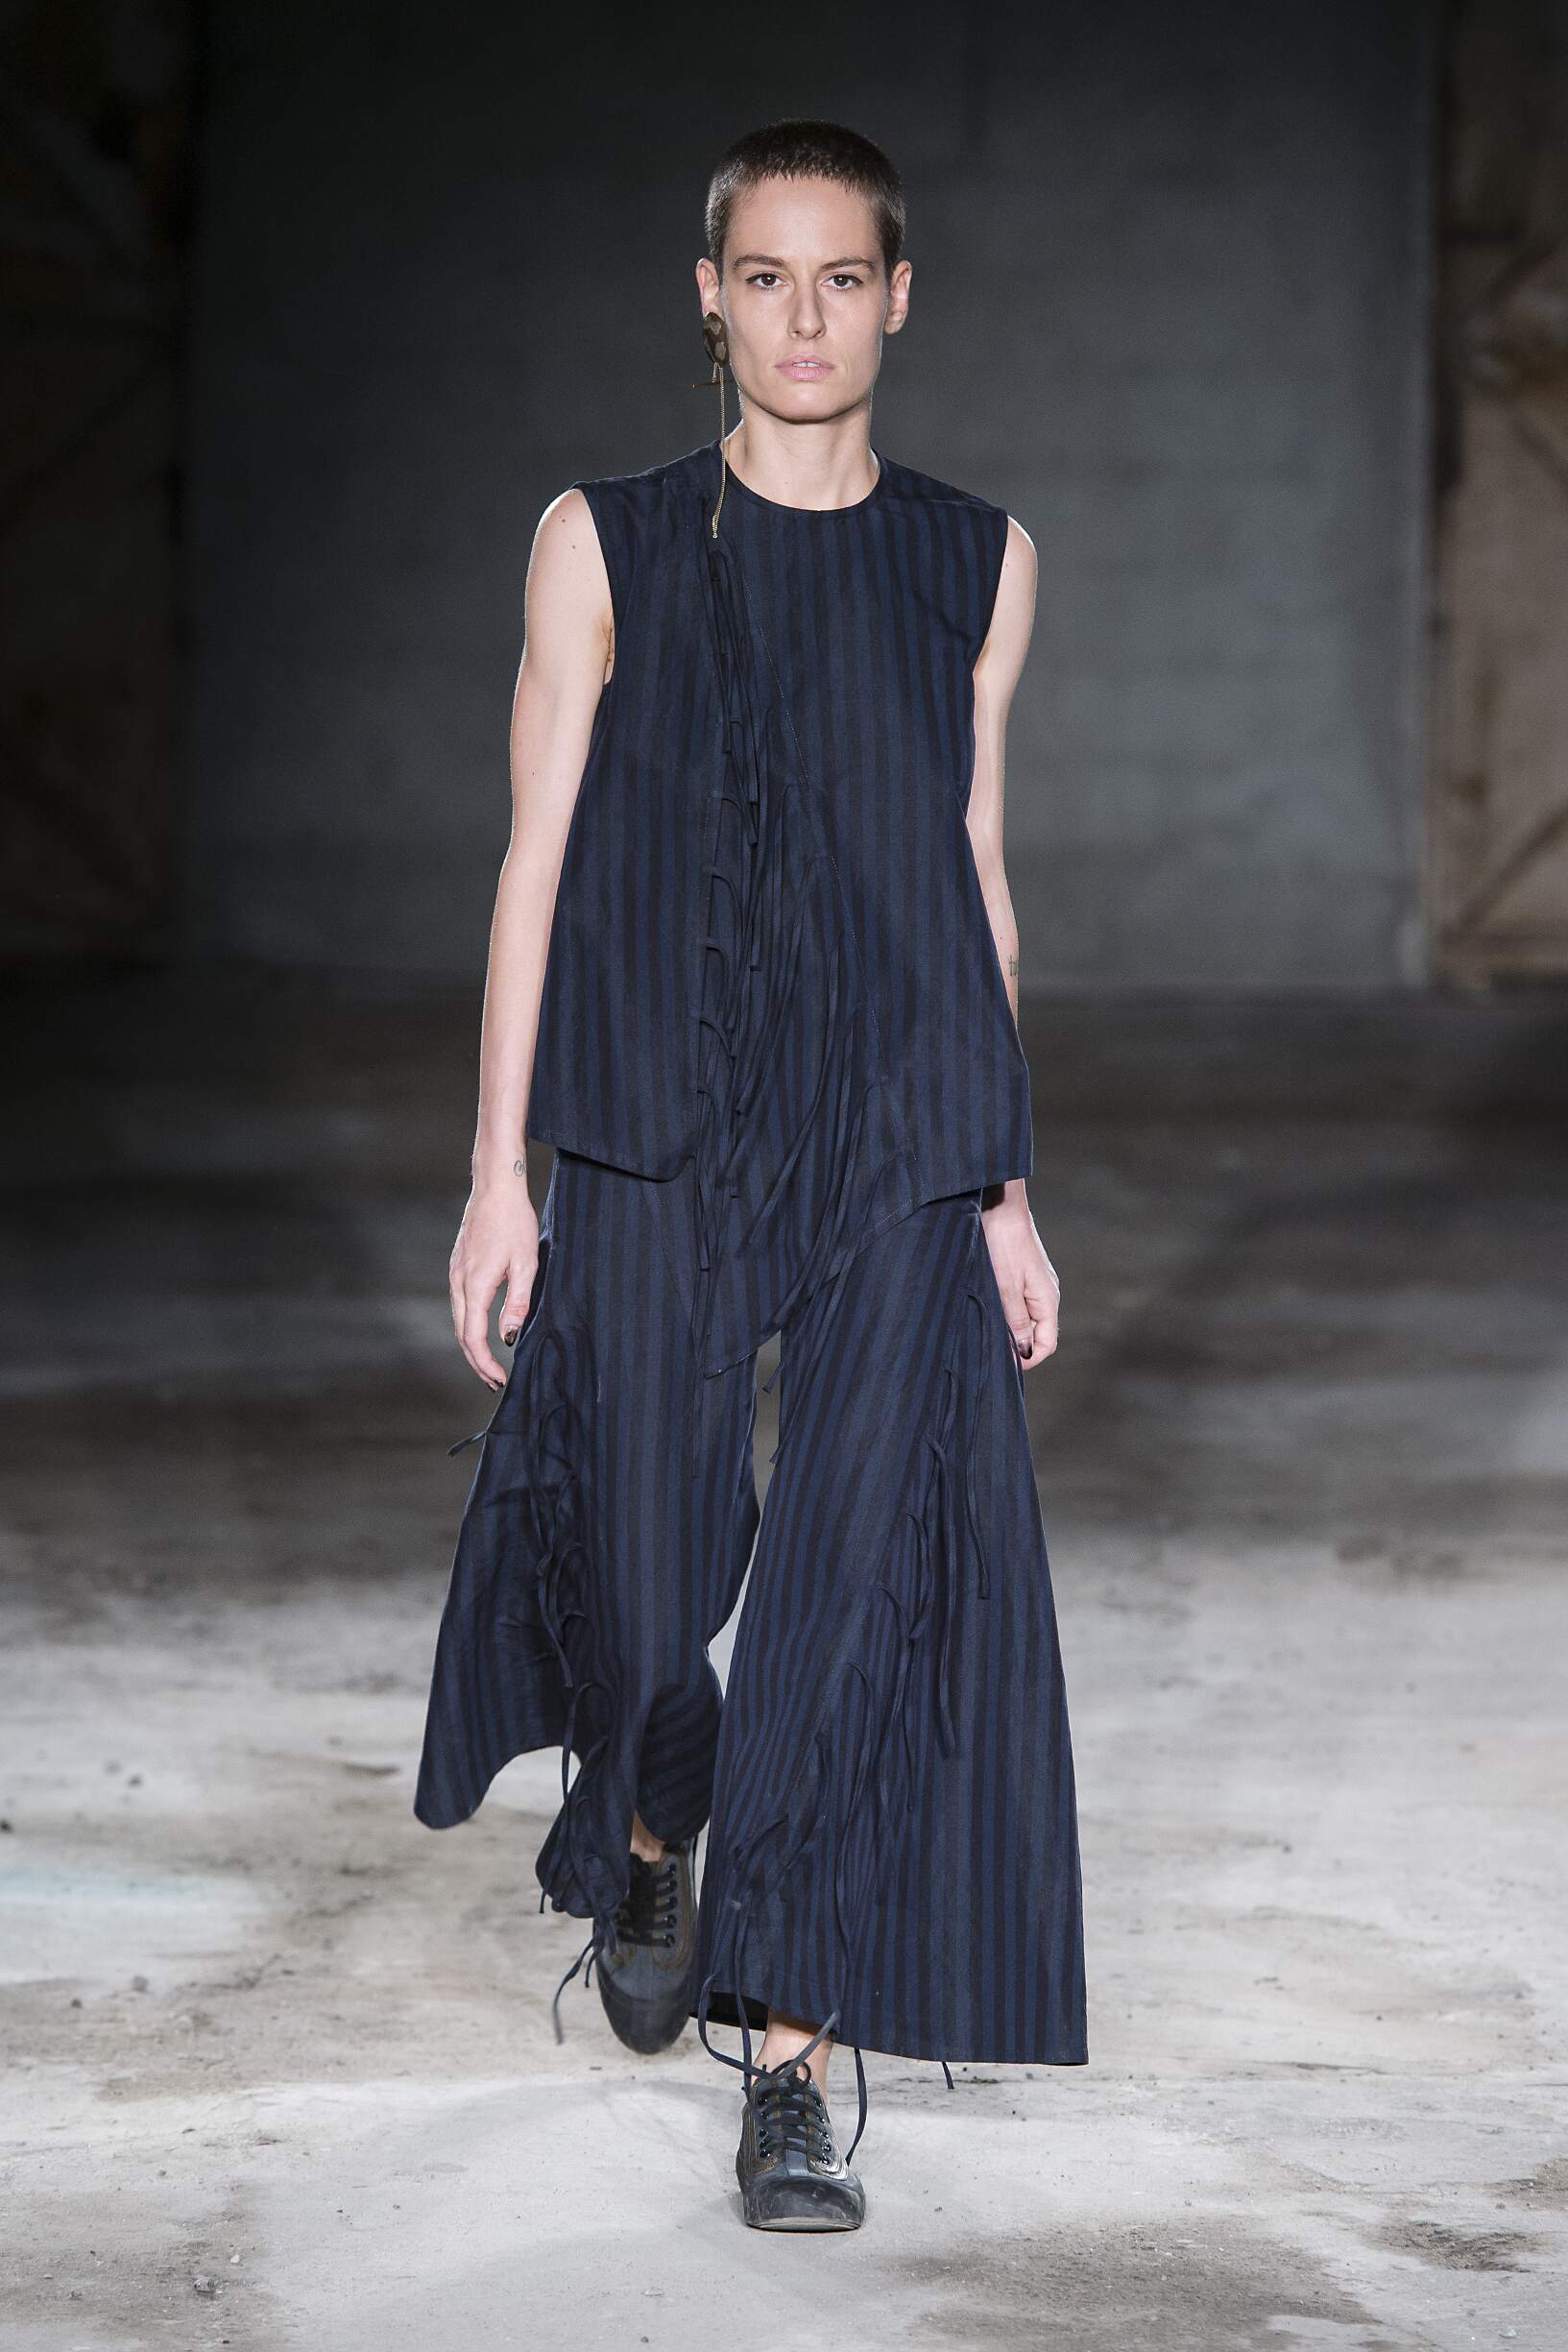 Catwalk Damir Doma Summer 2018